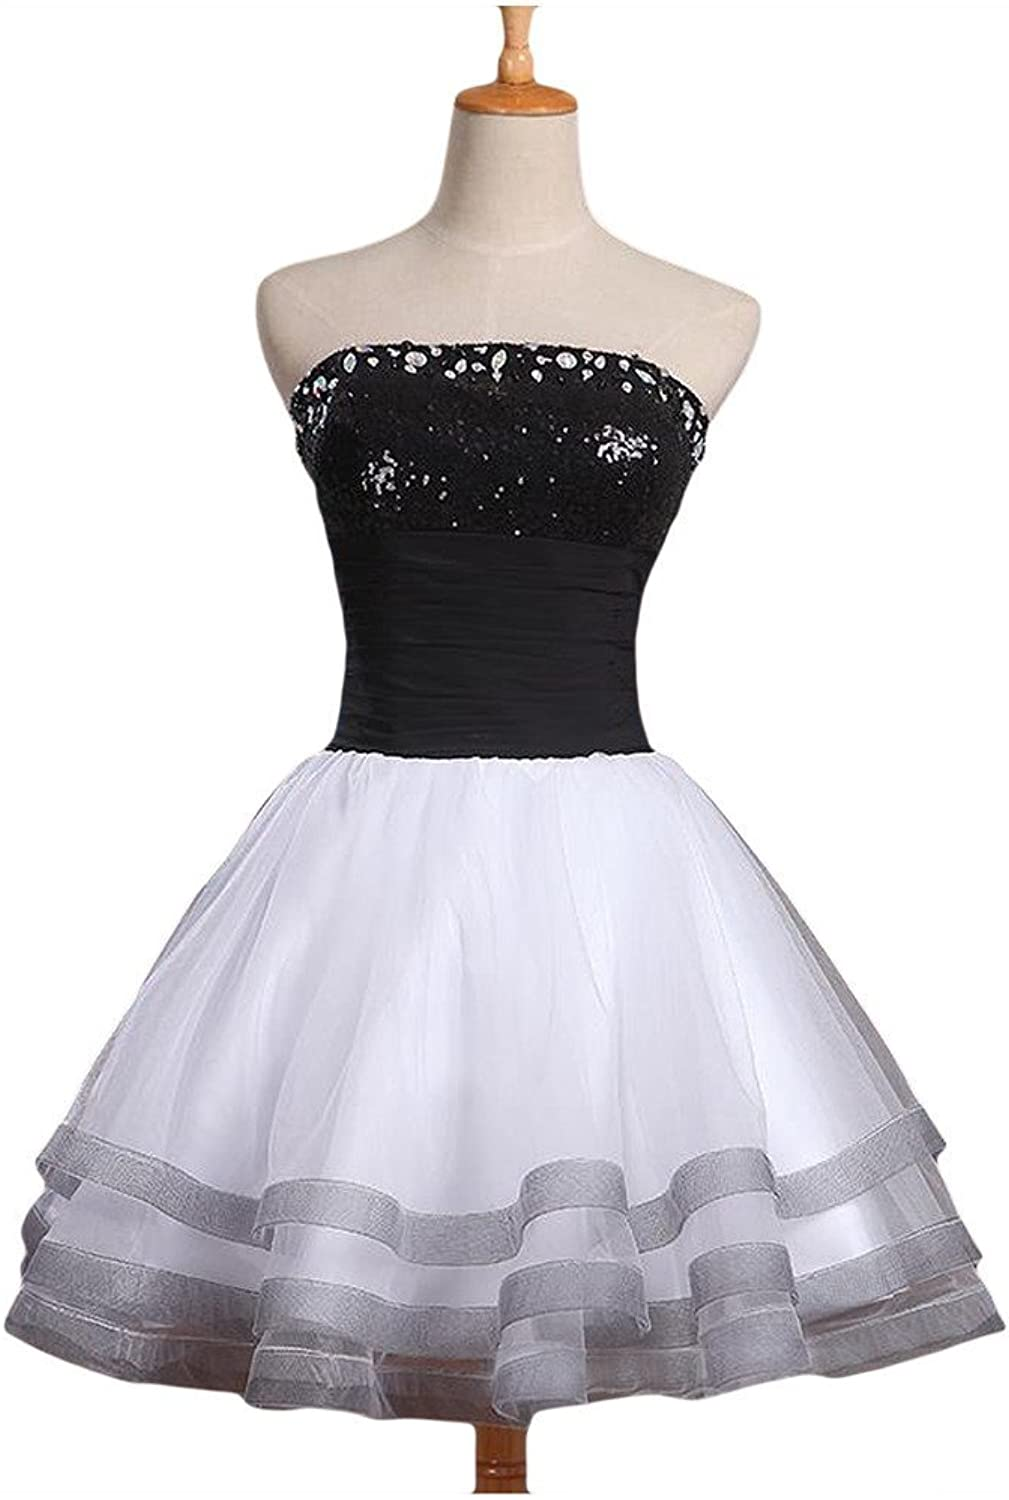 Angel Bride Black and White Strapless Prom Dresses ALine Tiered Ruffles Mini Dresses